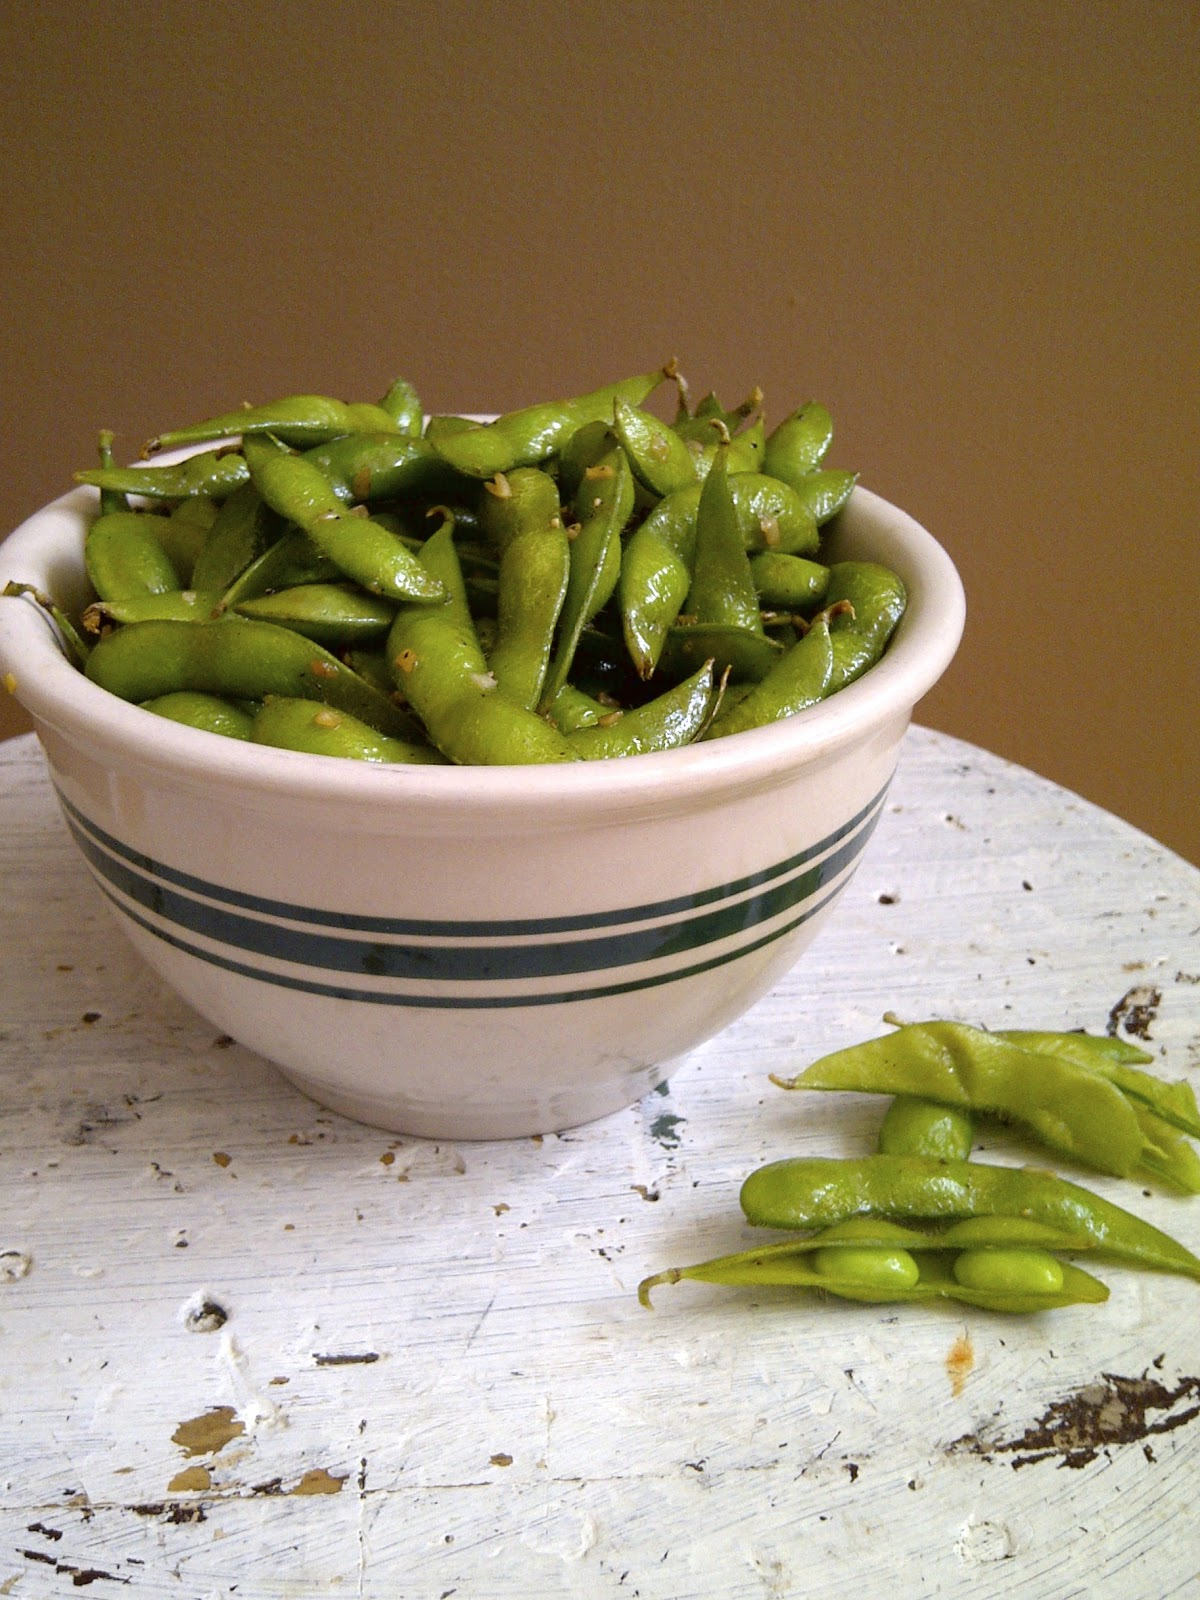 Garlic Edamame - toss frozen edamame in a garlic infused oil, with tons of minced garlic - www.soliloquyoffood.com